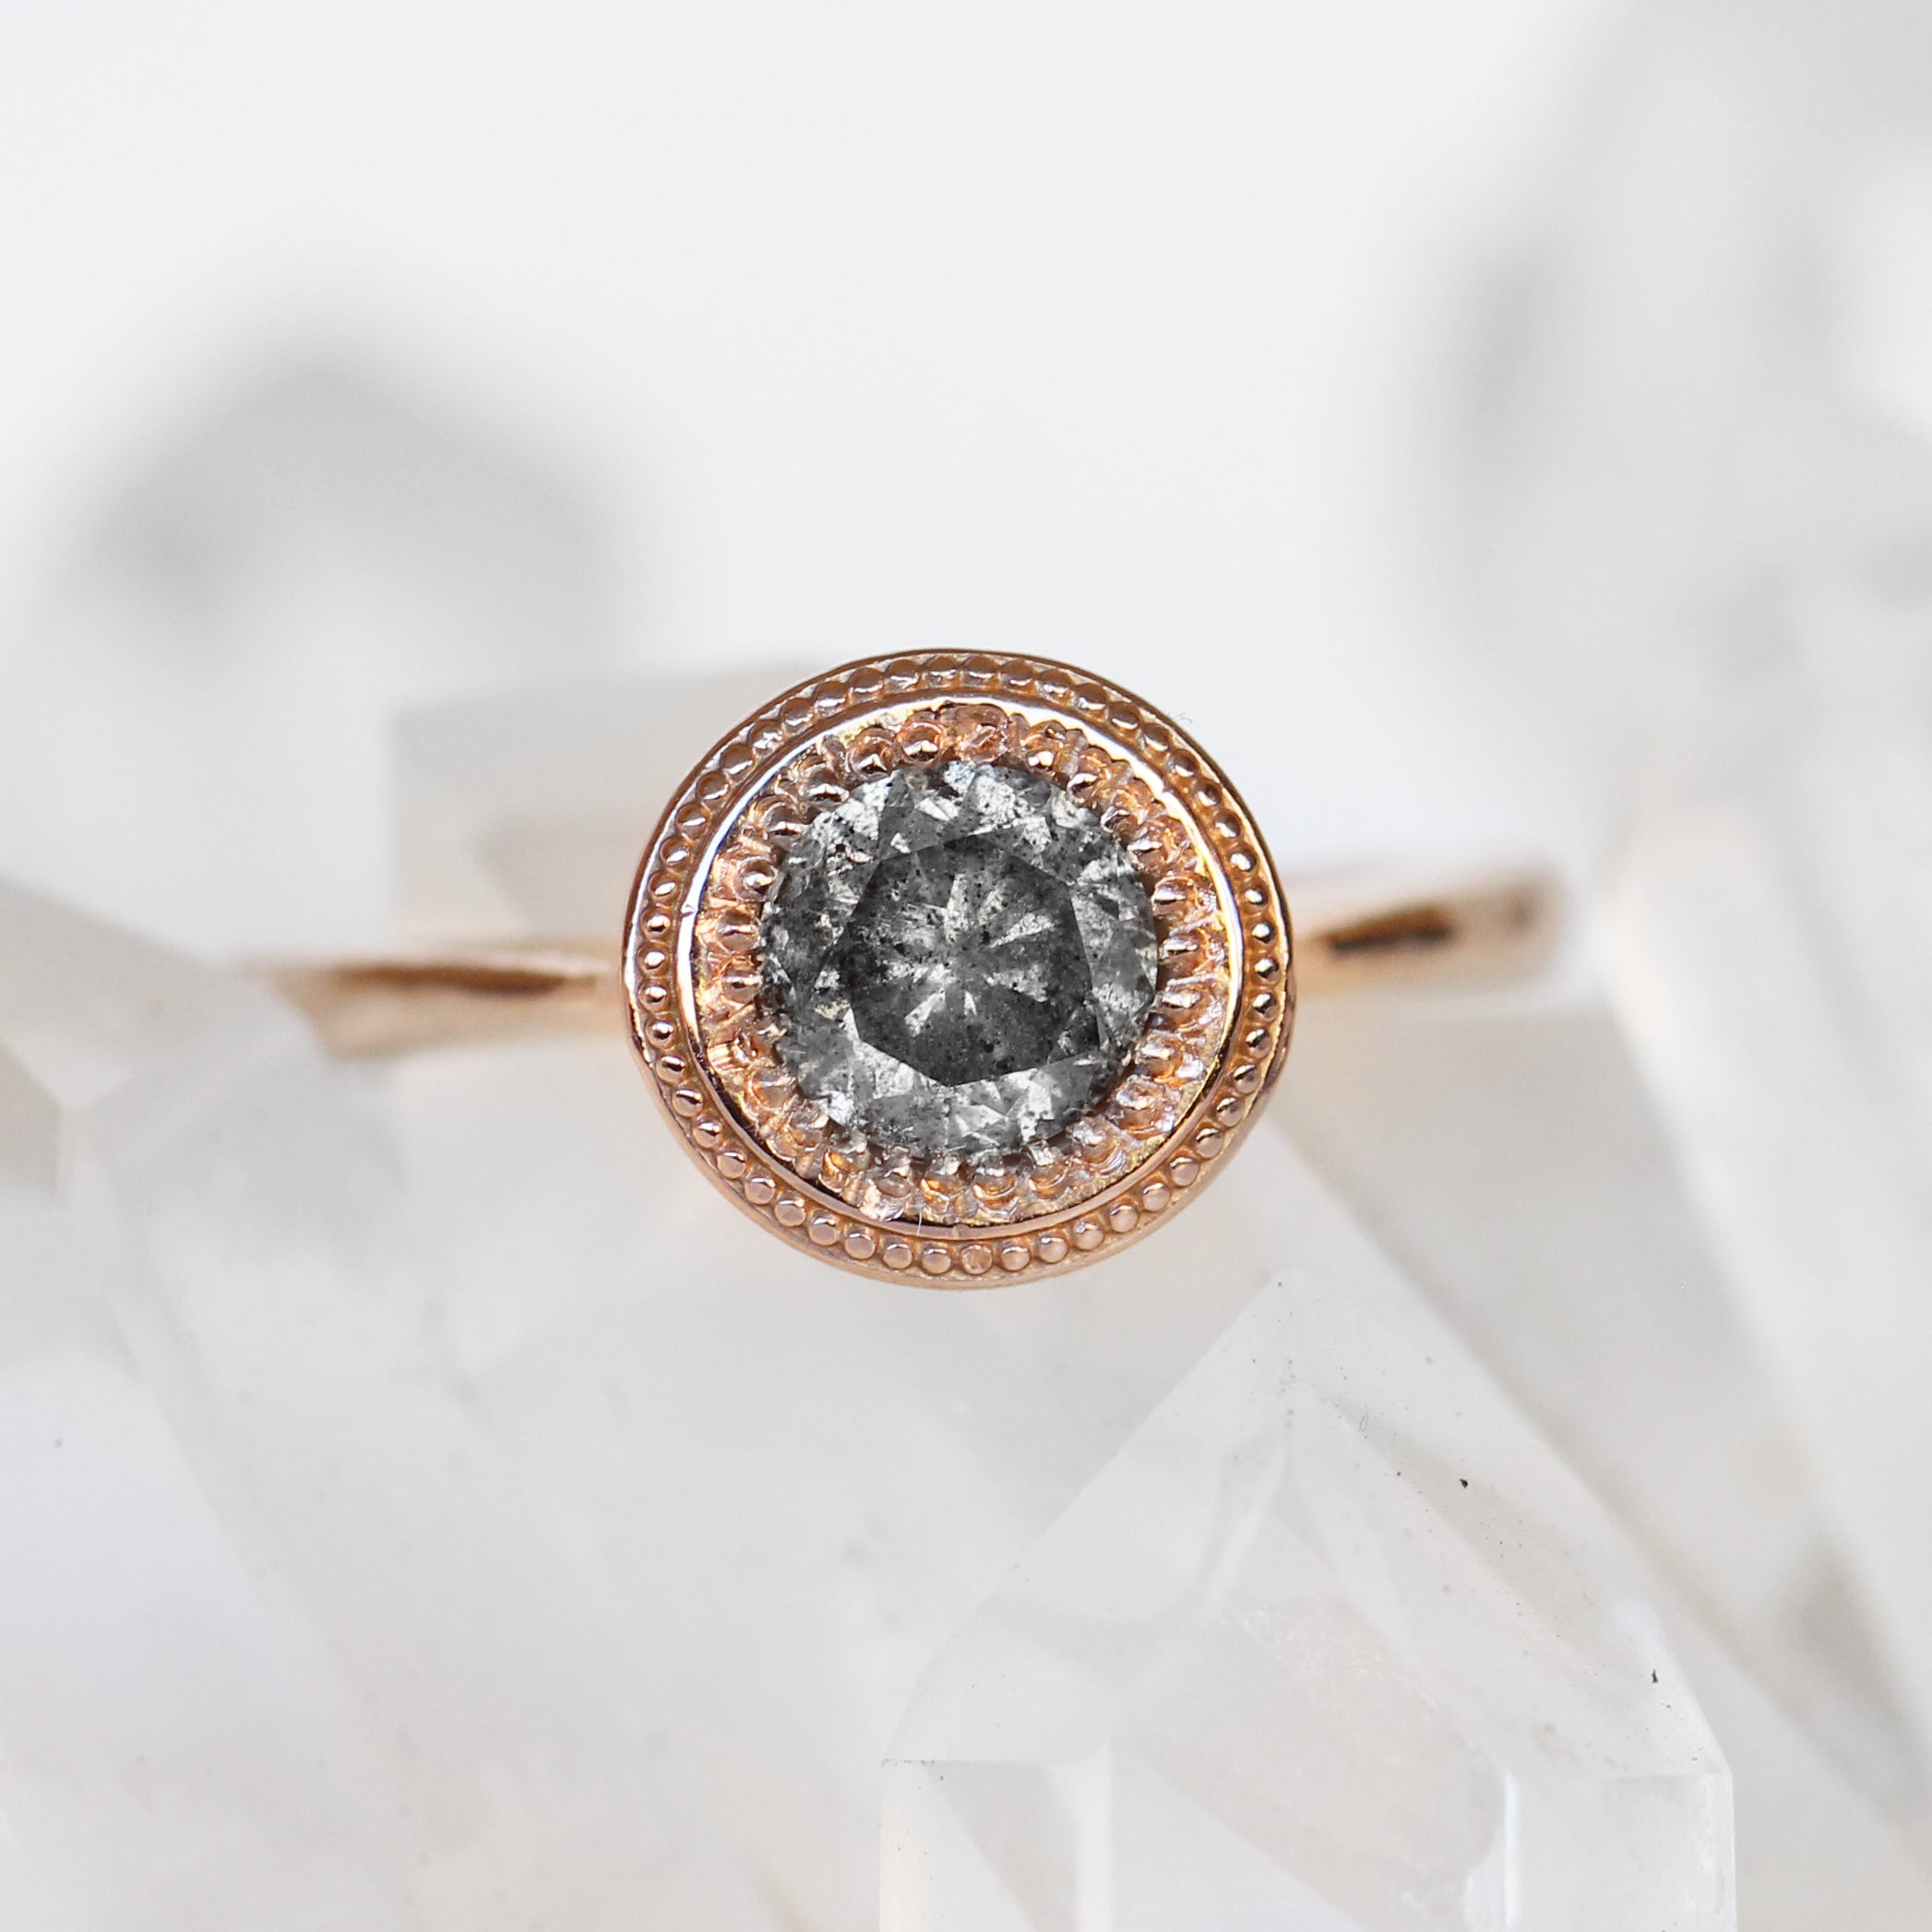 Martha Ring with a .93 carat Celestial Diamond in 10k Gold - Ready to Size and Ship - Salt & Pepper Celestial Diamond Engagement Rings and Wedding Bands  by Midwinter Co.